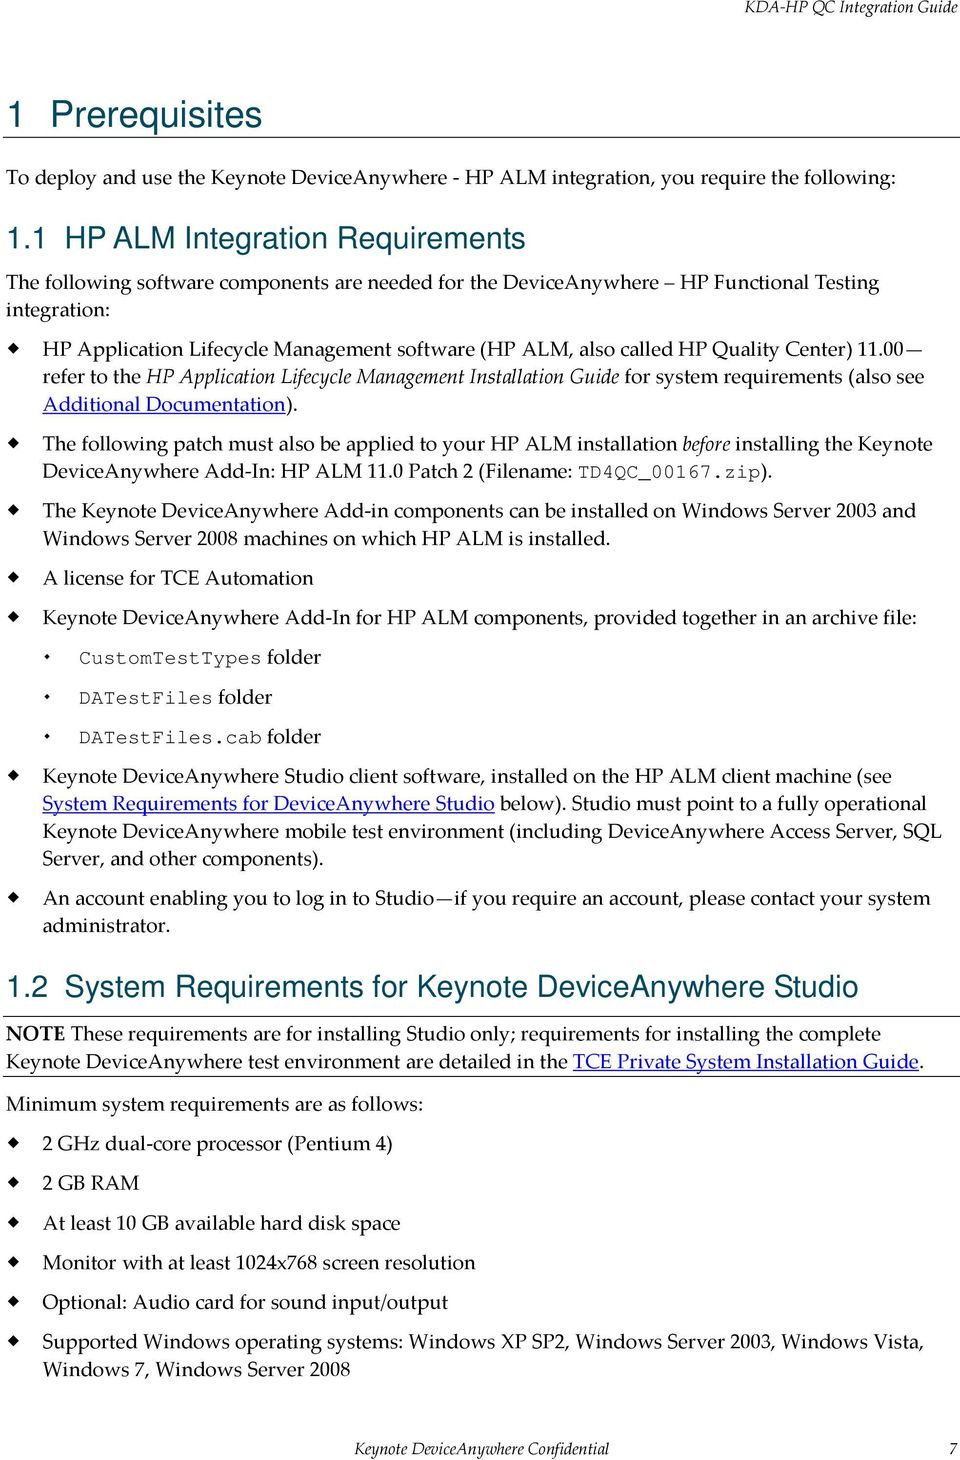 called HP Quality Center) 11.00 refer to the HP Application Lifecycle Management Installation Guide for system requirements (also see Additional Documentation).